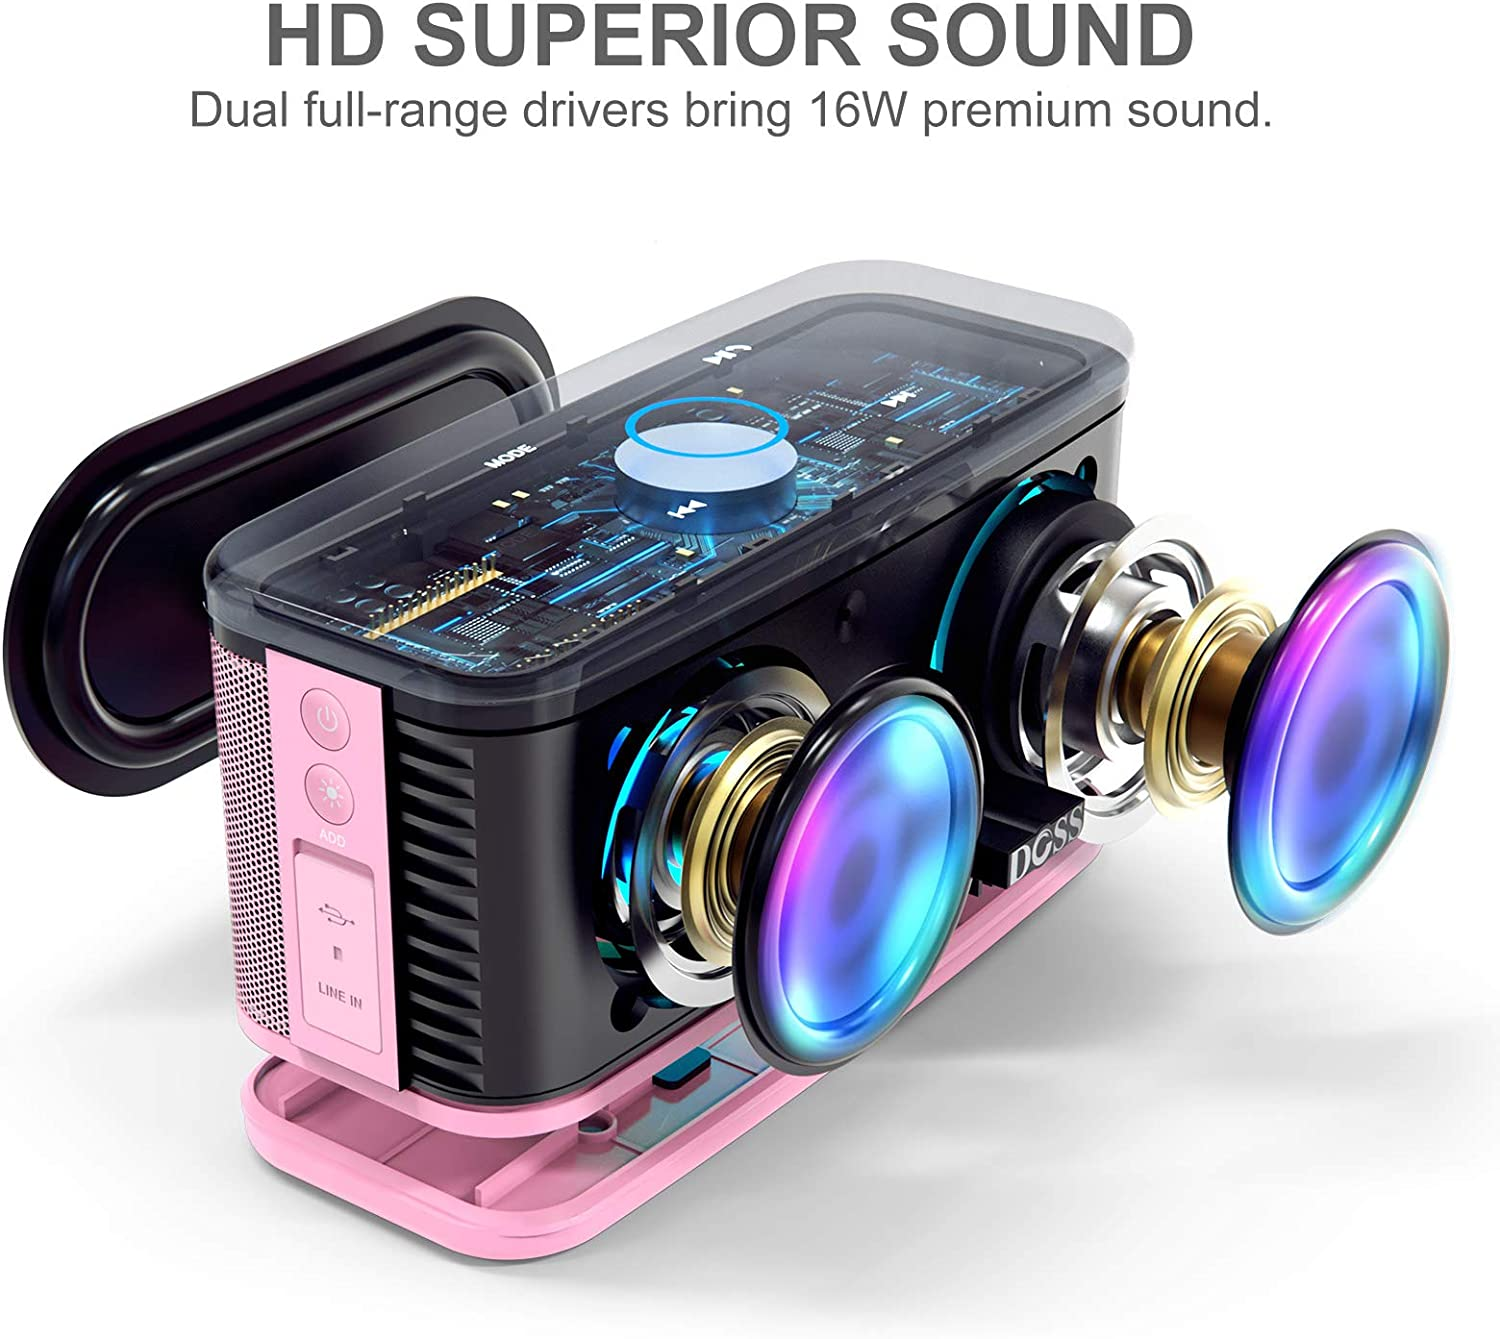 DOSS SoundBox Plus Portable Wireless Bluetooth Speaker with HD Sound and Deep Bass 20H Playtime Outdoor Portable Wireless Speaker for Home Travel-Pink Built-in Mic Wireless Stereo Pairing